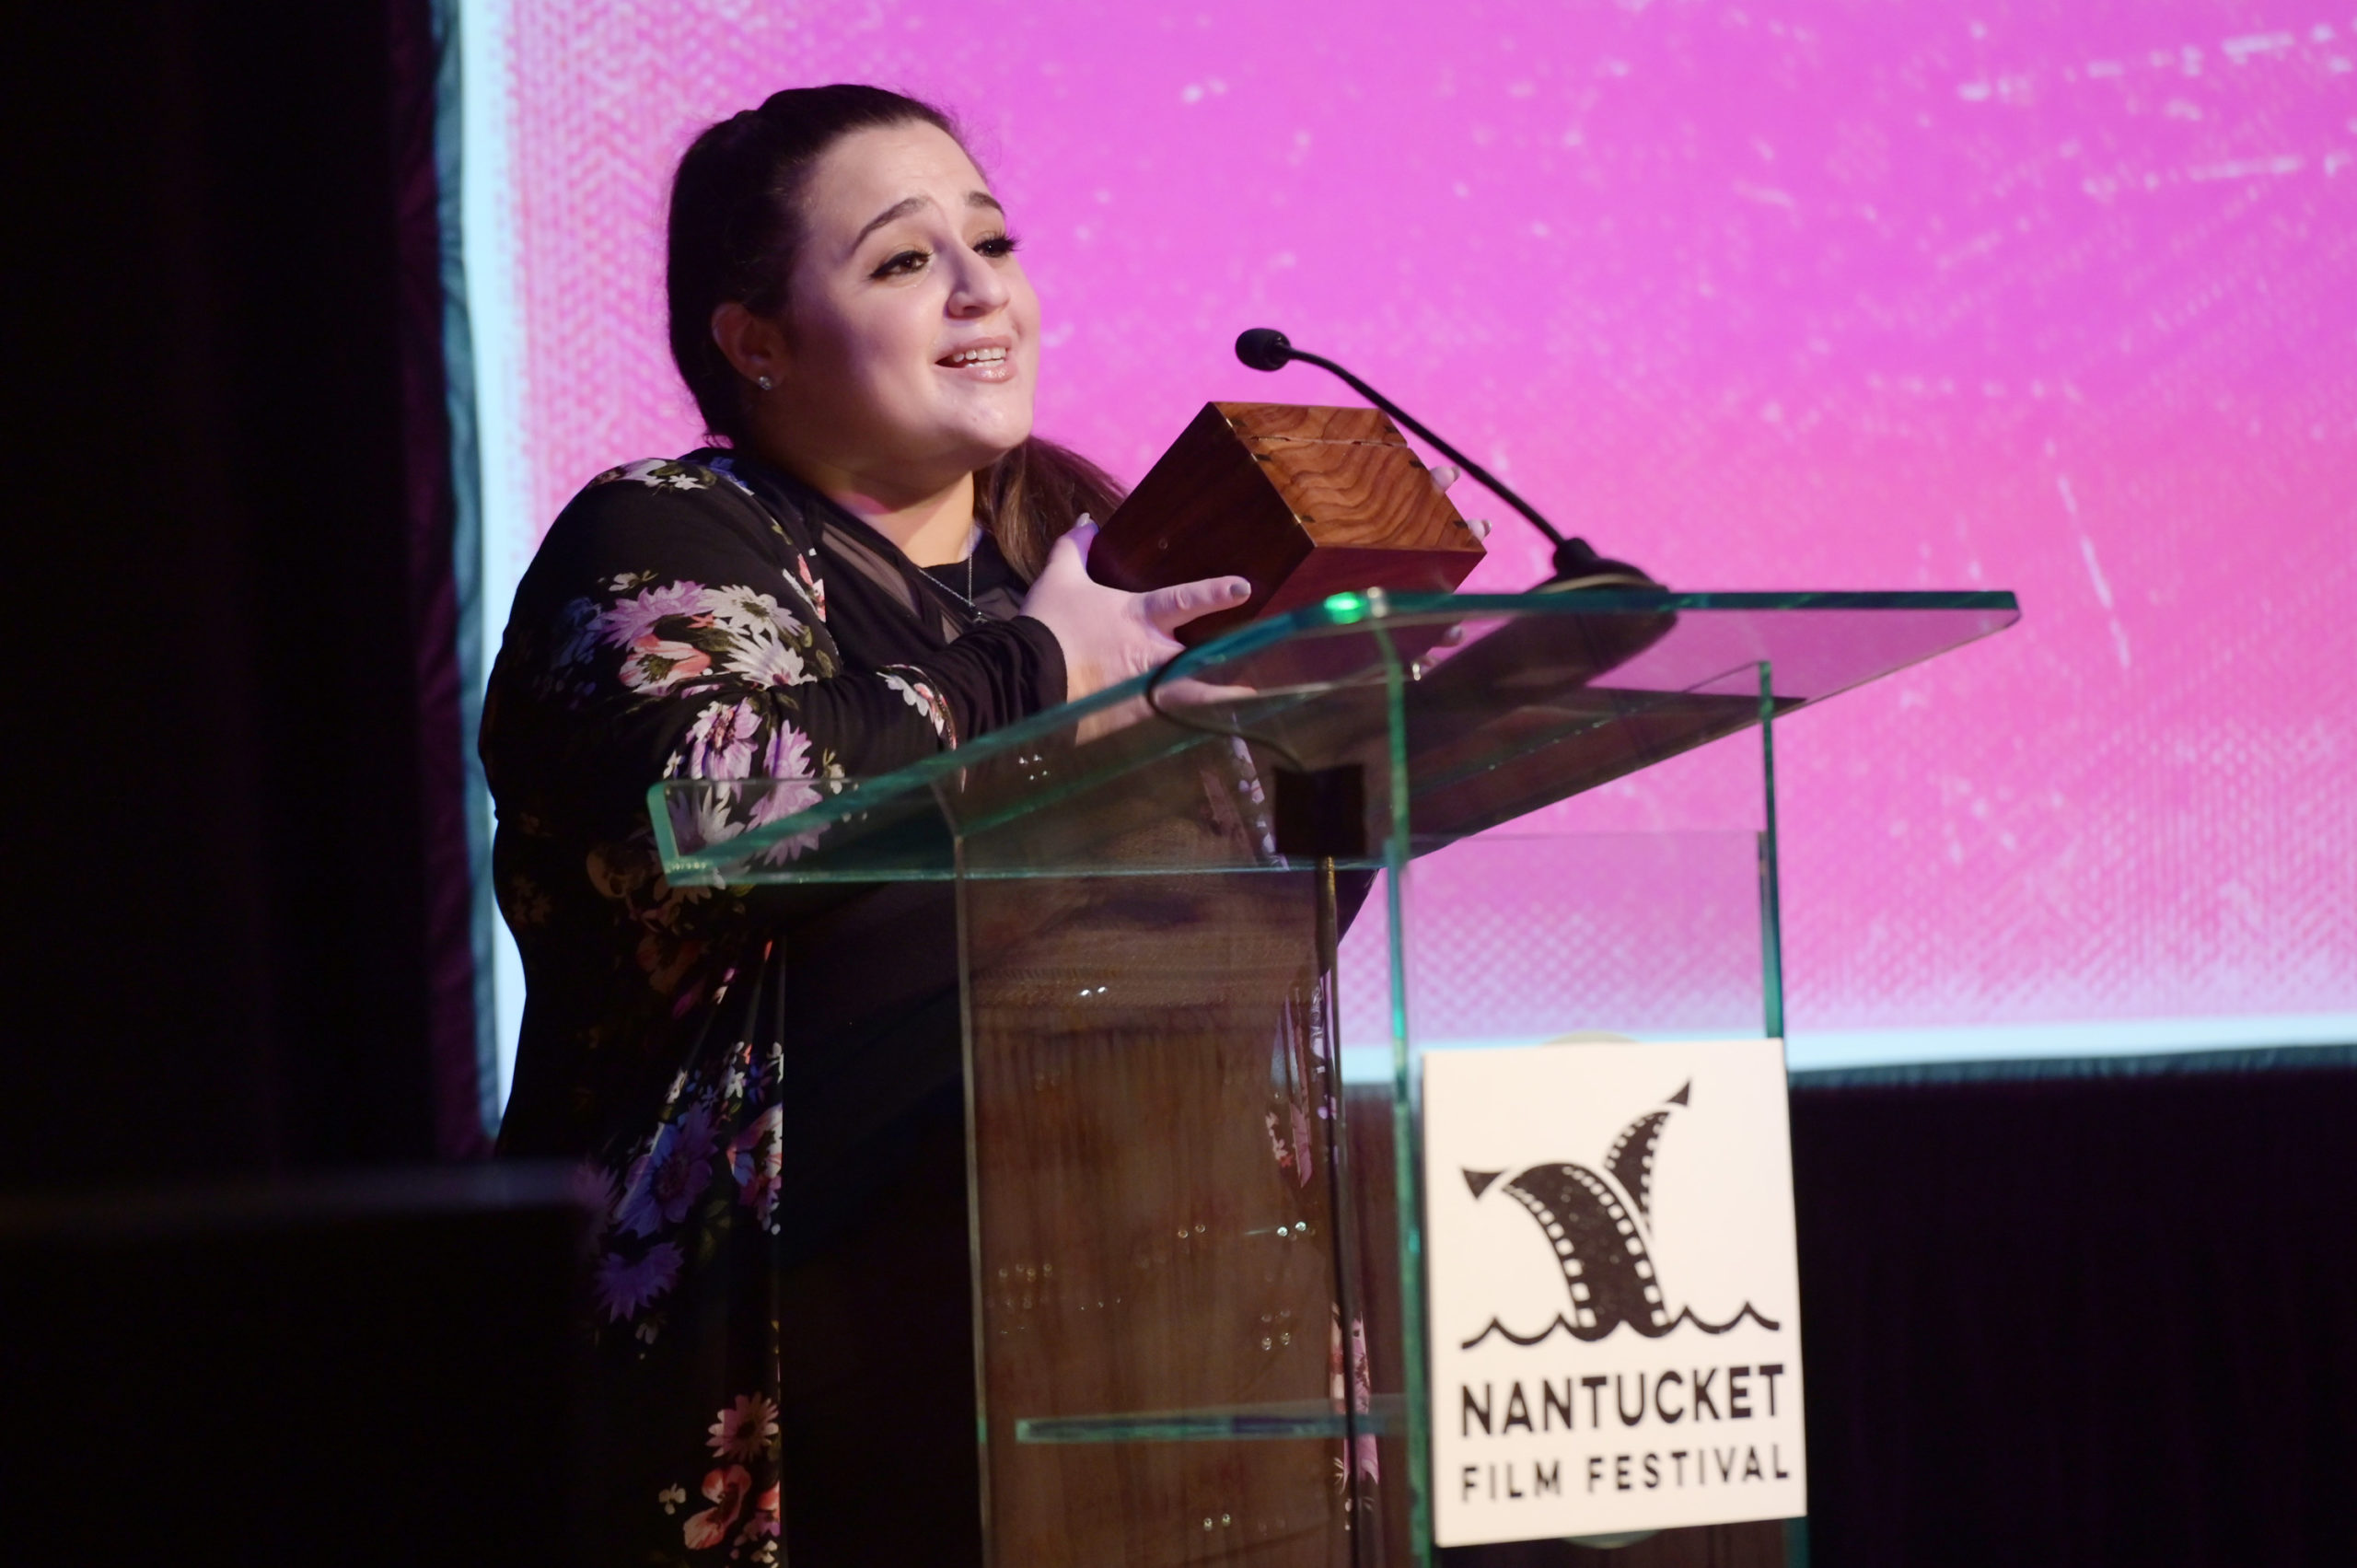 Actress Nikki Blonsky